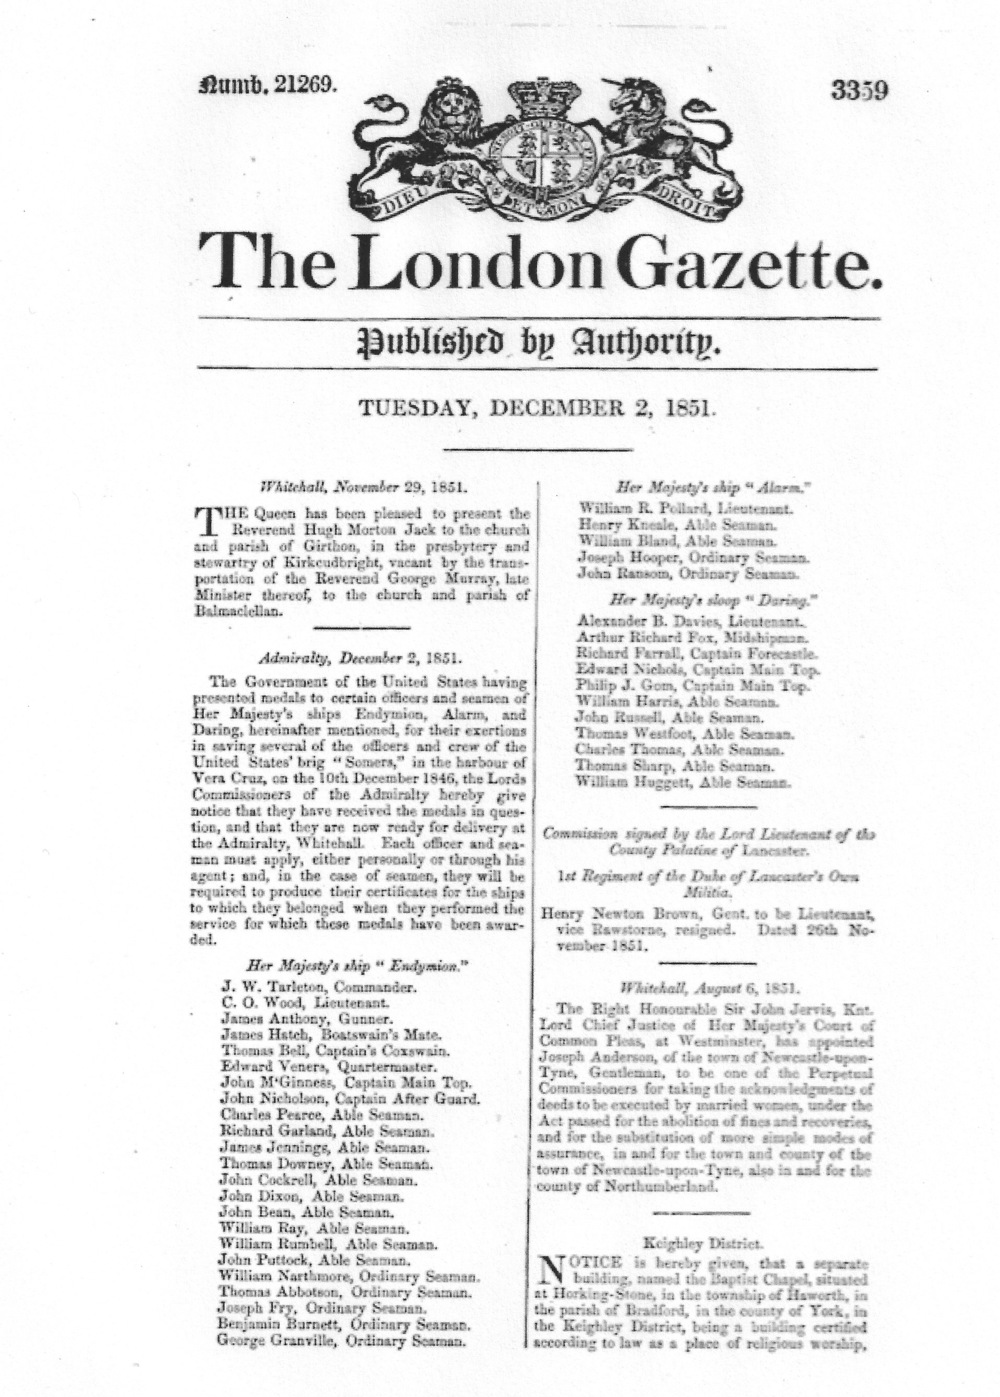 The London Gazette , December 2, 1851. Charles Thomas listed as one of sailors entitled to receive medal.